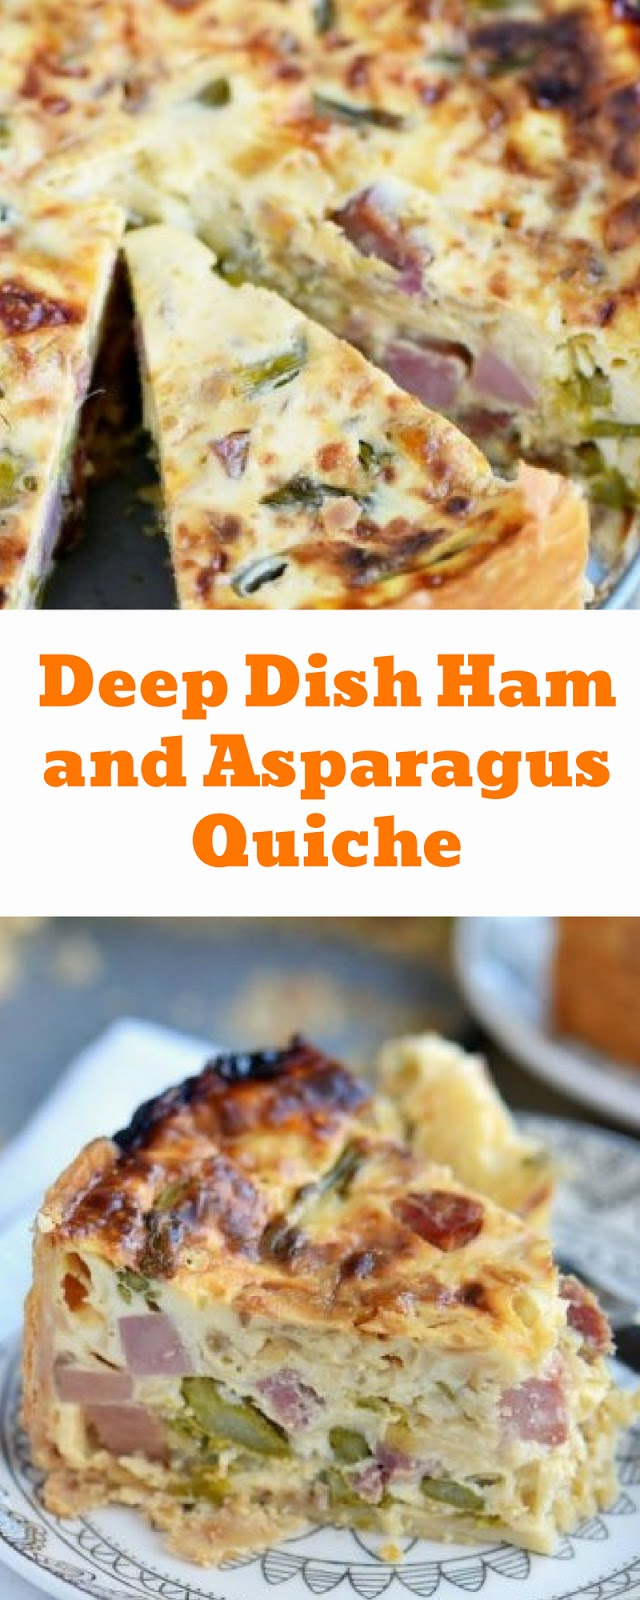 Deep Dish Ham and Asparagus Quiche Recipe